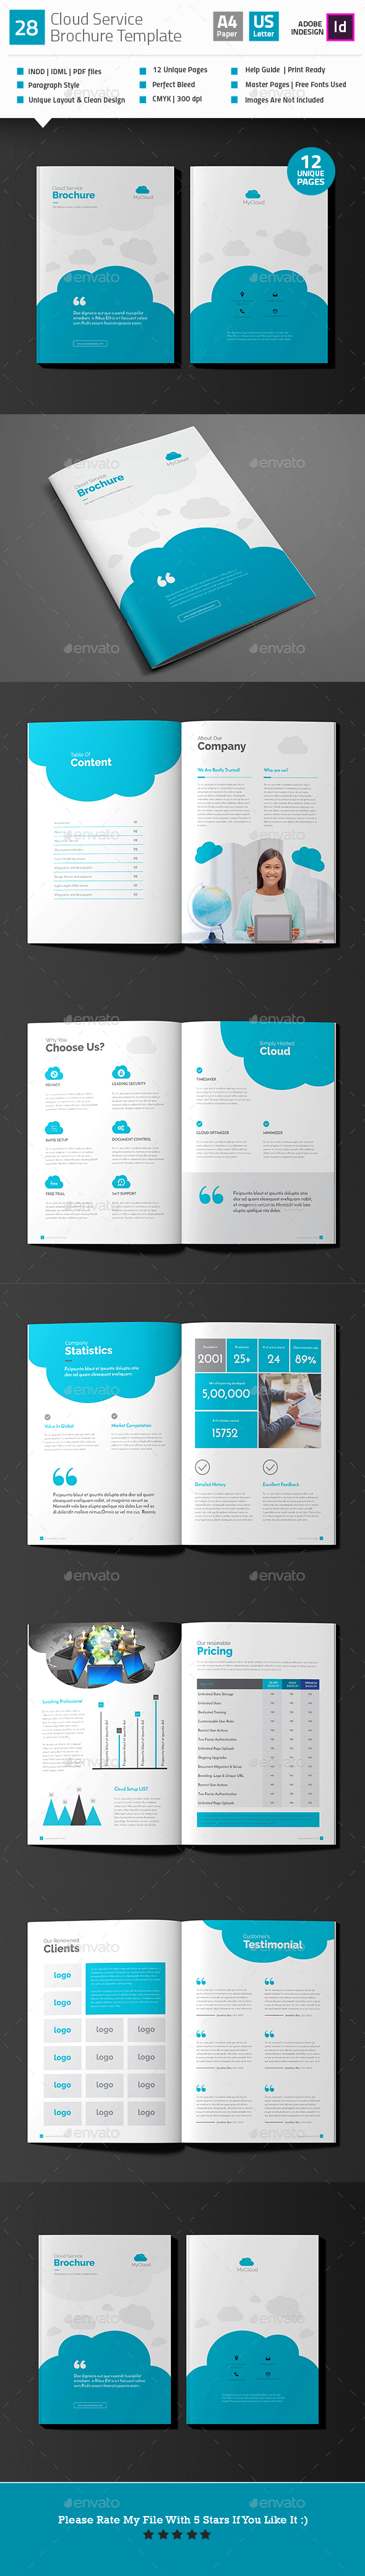 cloud service brochure template v28 indesign indd 85x11 web hosting download